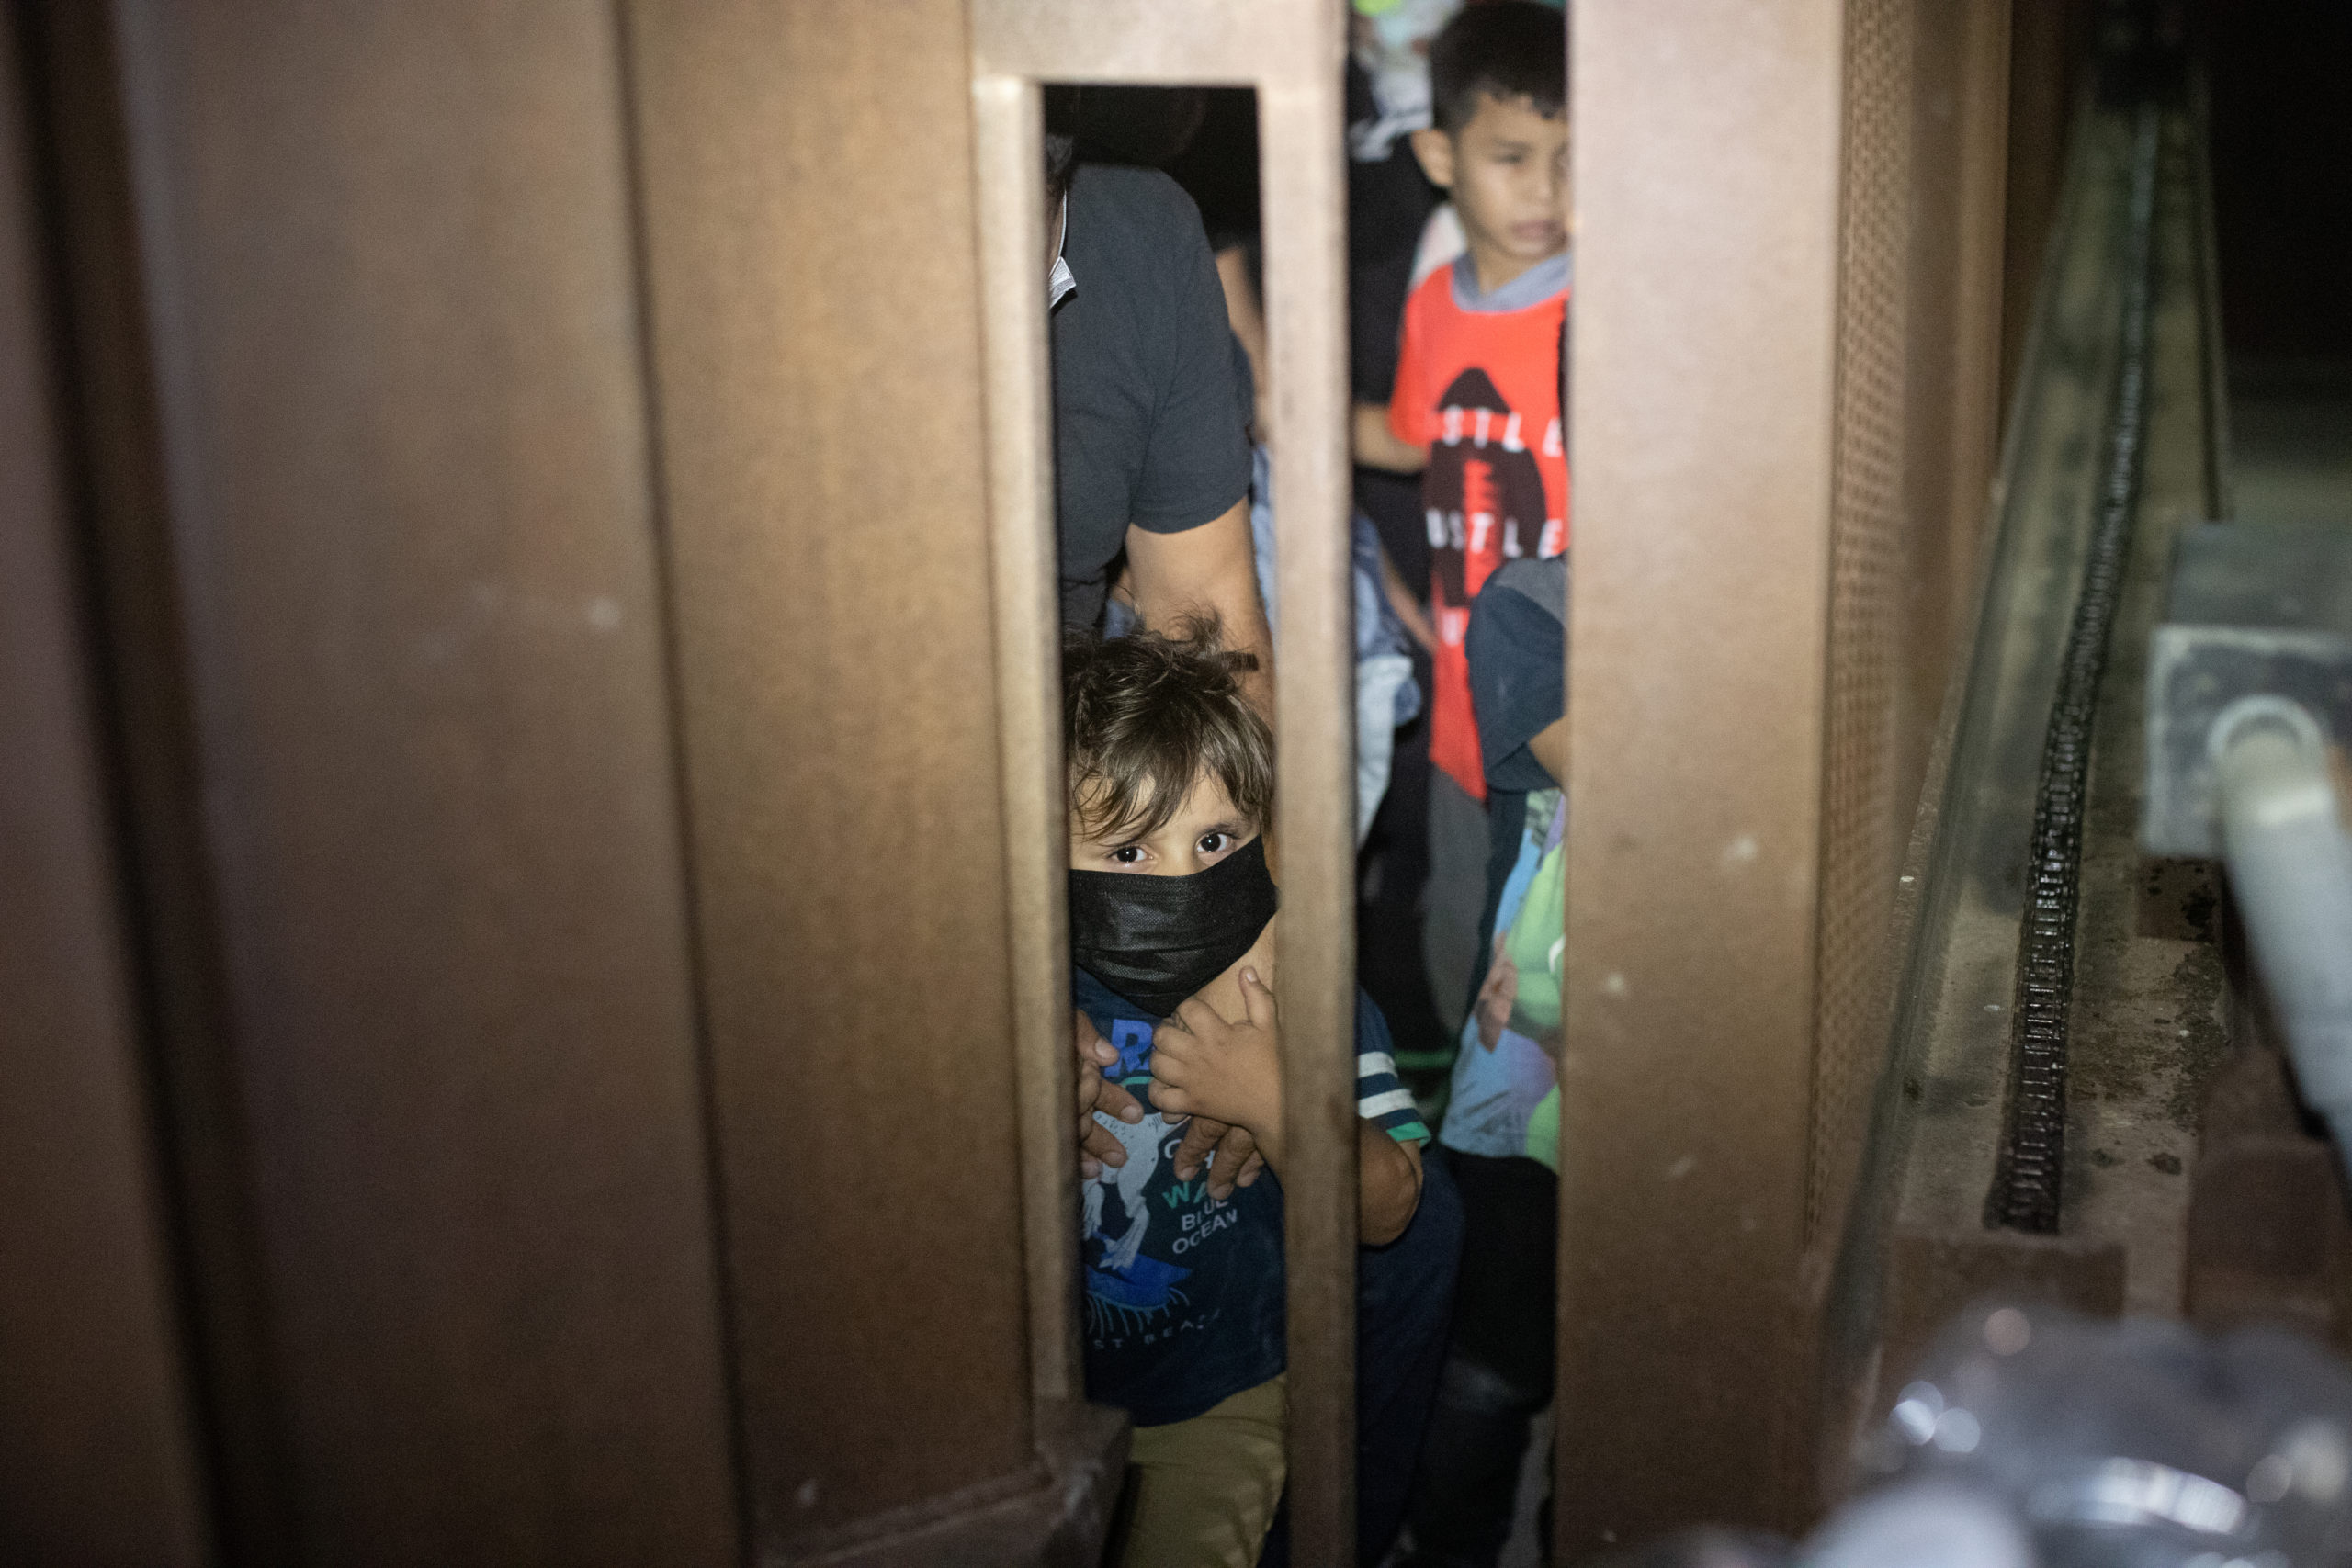 Groups of migrants waited on the other side of the border wall after illegally entering the U.S. near the Hidalgo Point of Entry in Hidalgo, Texas, on August 10, 2021. (Kaylee Greenlee - Daily Caller News Foundation)